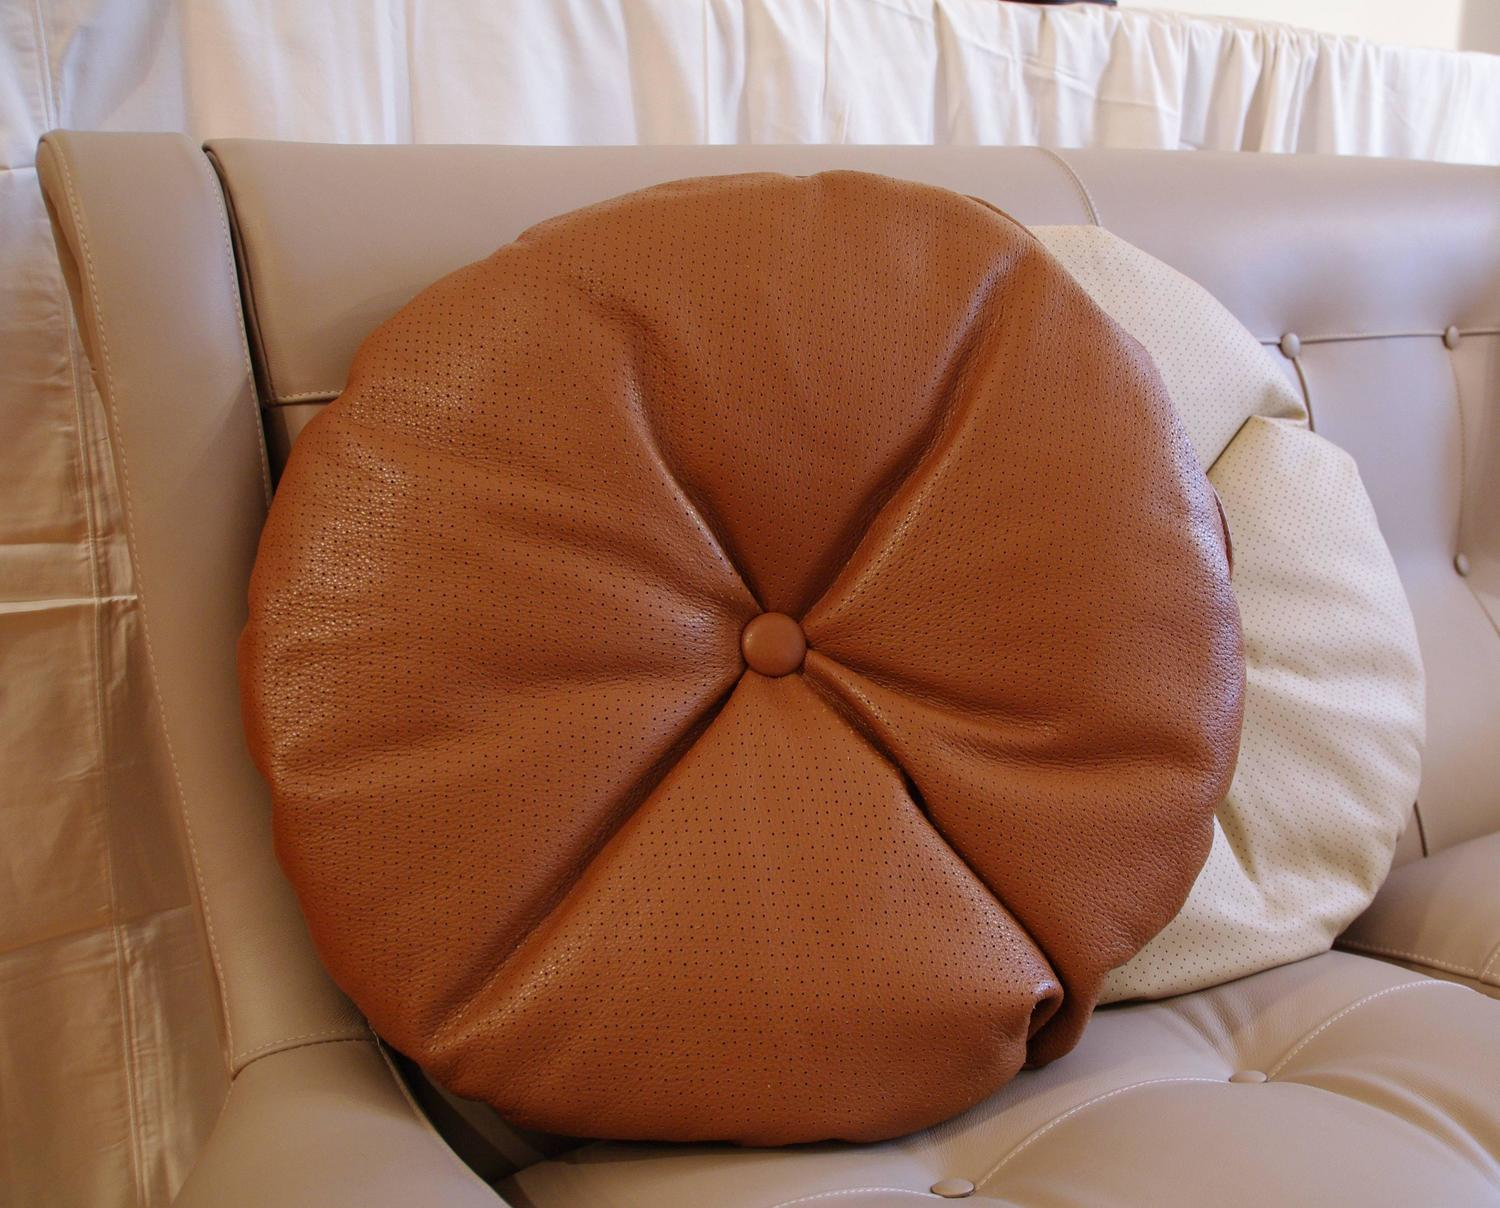 Large Round Decorative Pillow : Italian Leather Decorative Pillow with Button by Arflex, Italy For Sale at 1stdibs